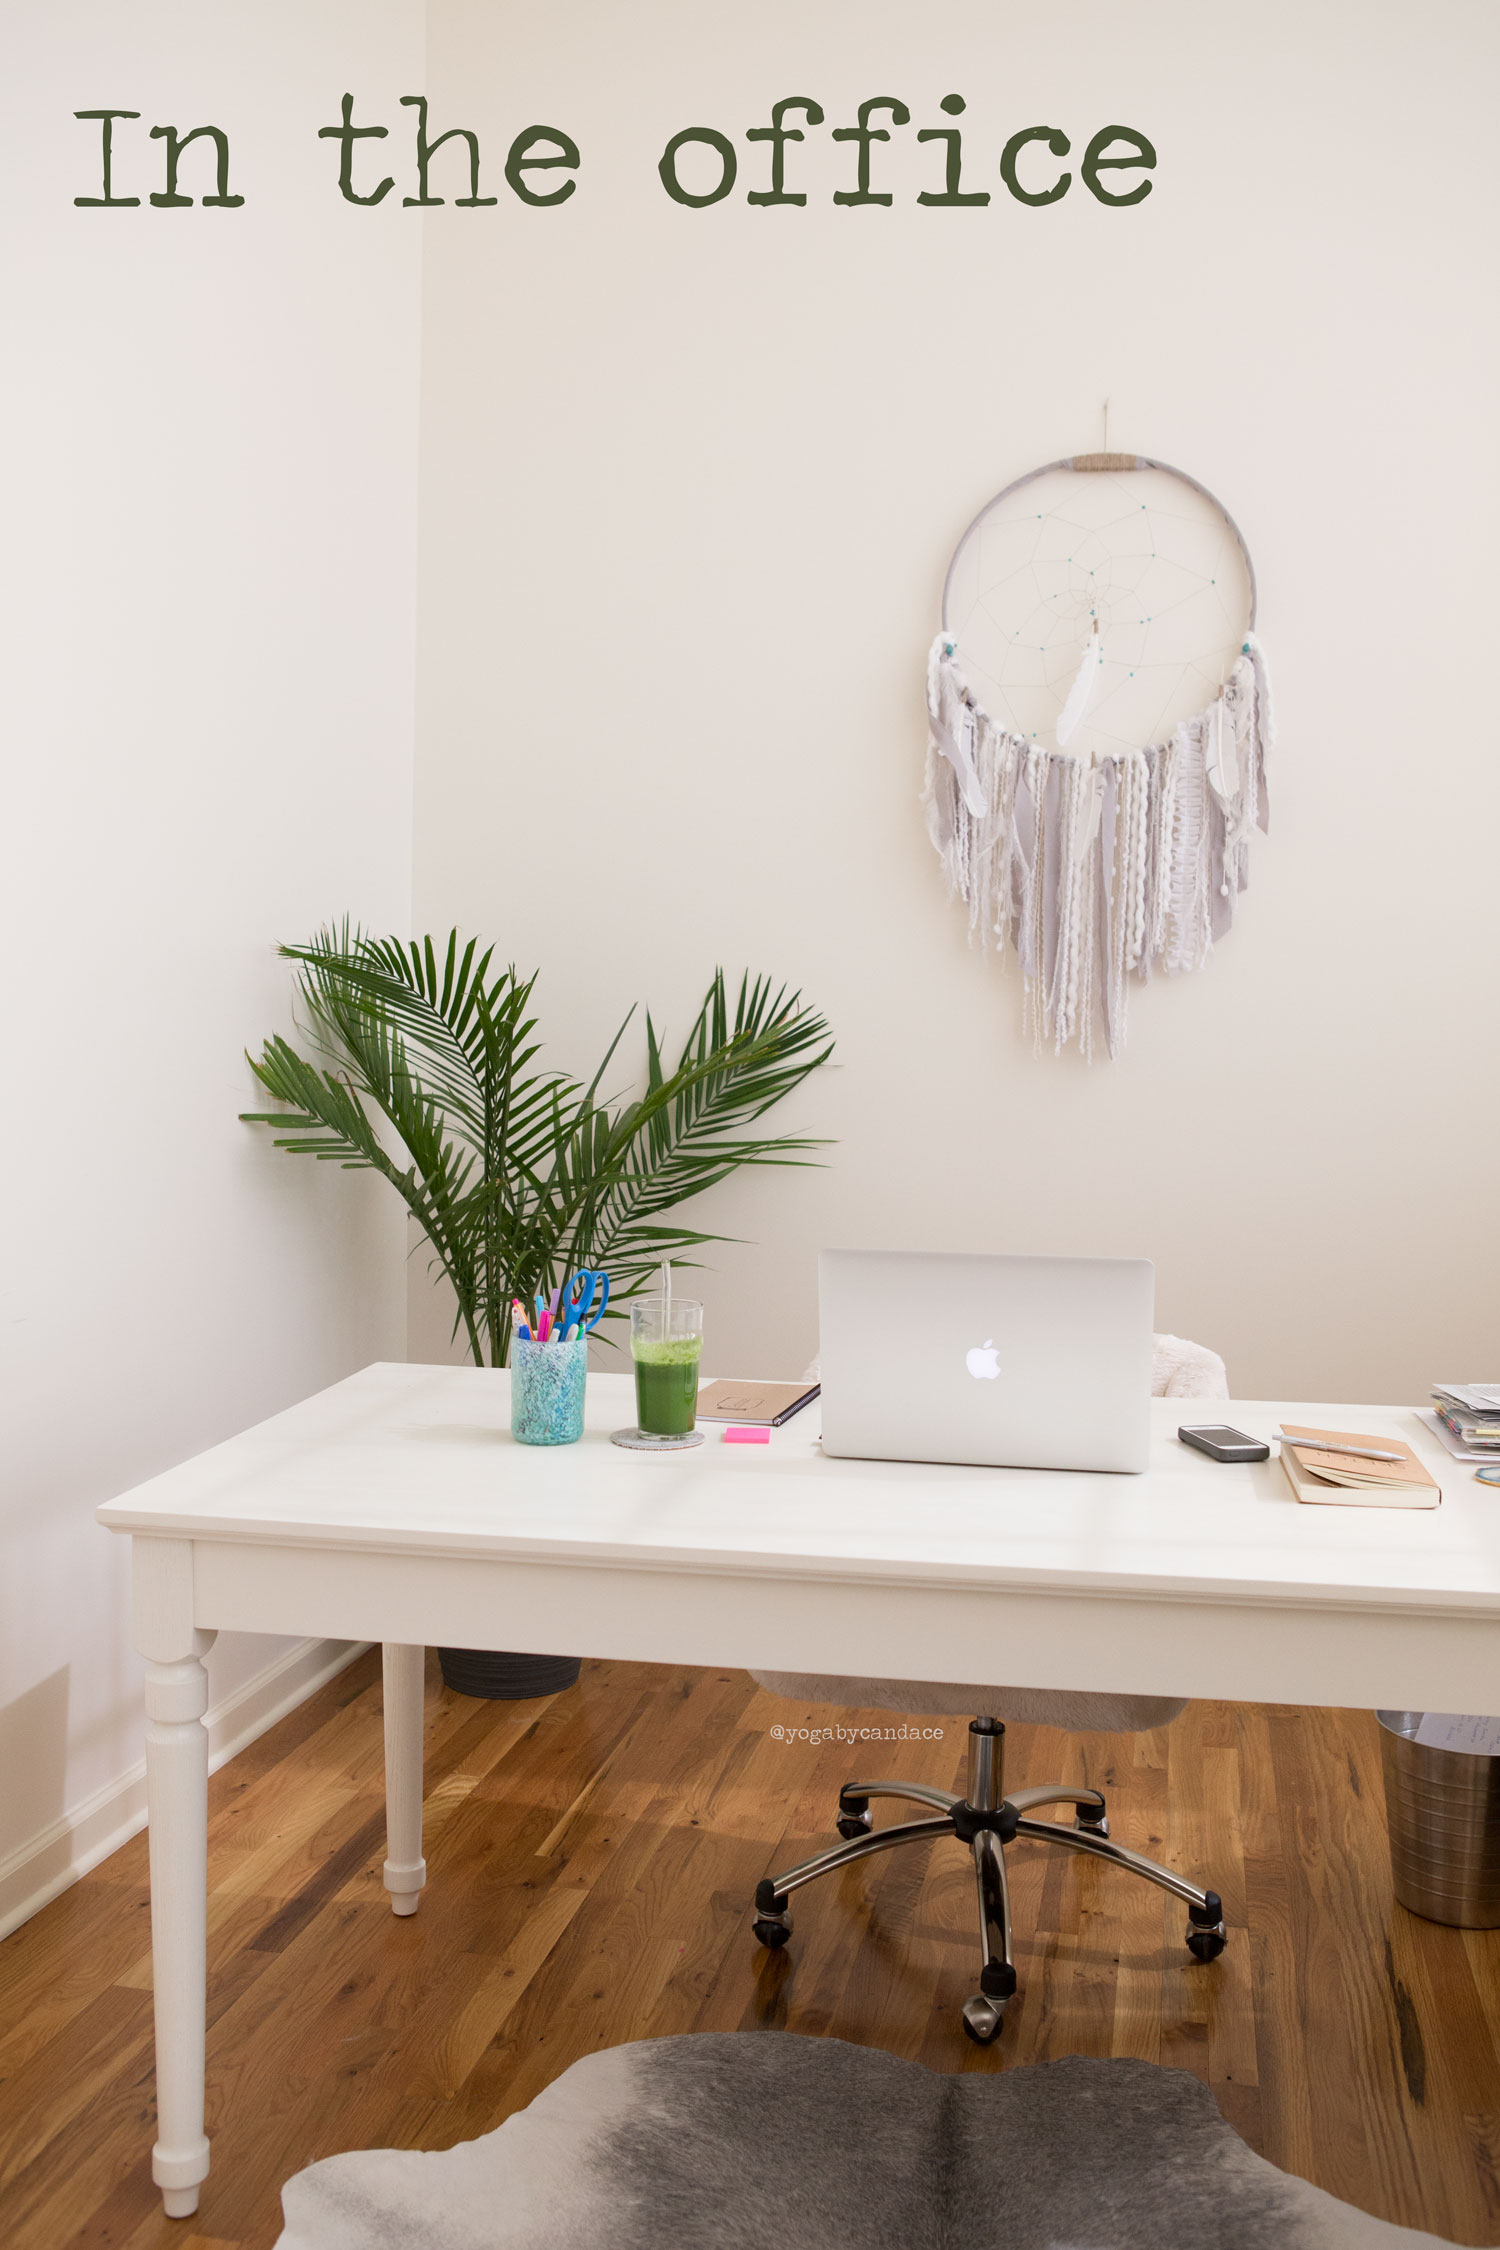 Work space: desk from Potterybarn ( similar  and  budget friendly ), chair from Potterybarn,  dreamcatcher .